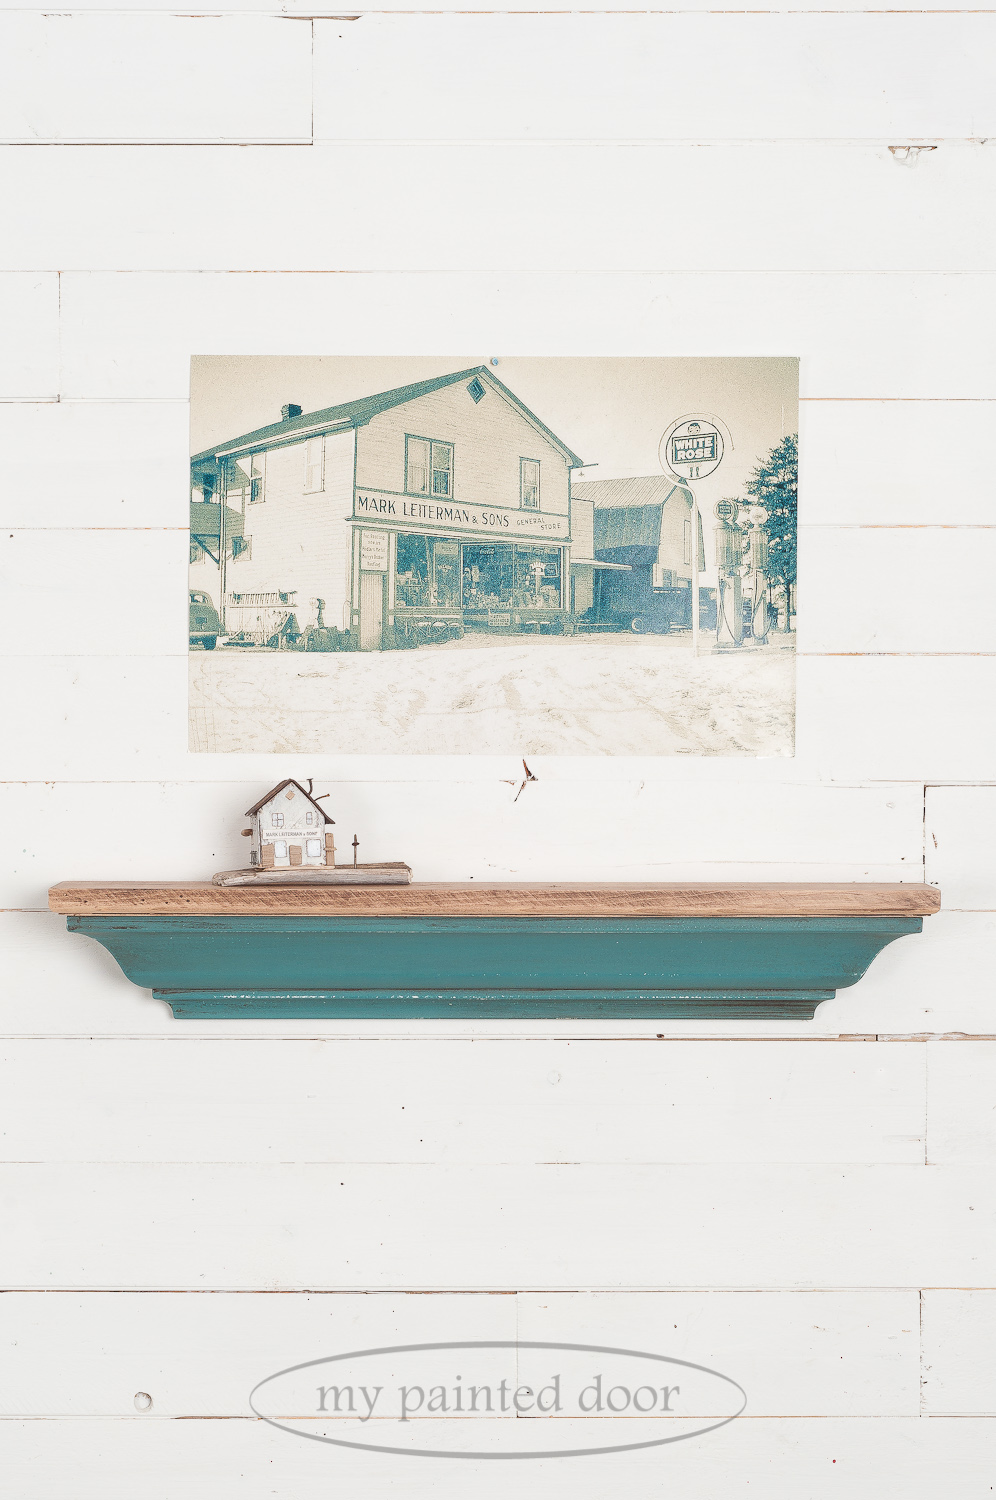 Learn how to paint furniture - Decorative shelf painted with Miss Mustard Seed's Milk Paint in the colour Kitchen Scale and top coated with Fusion Mineral Paint Espresso Furniture Wax.